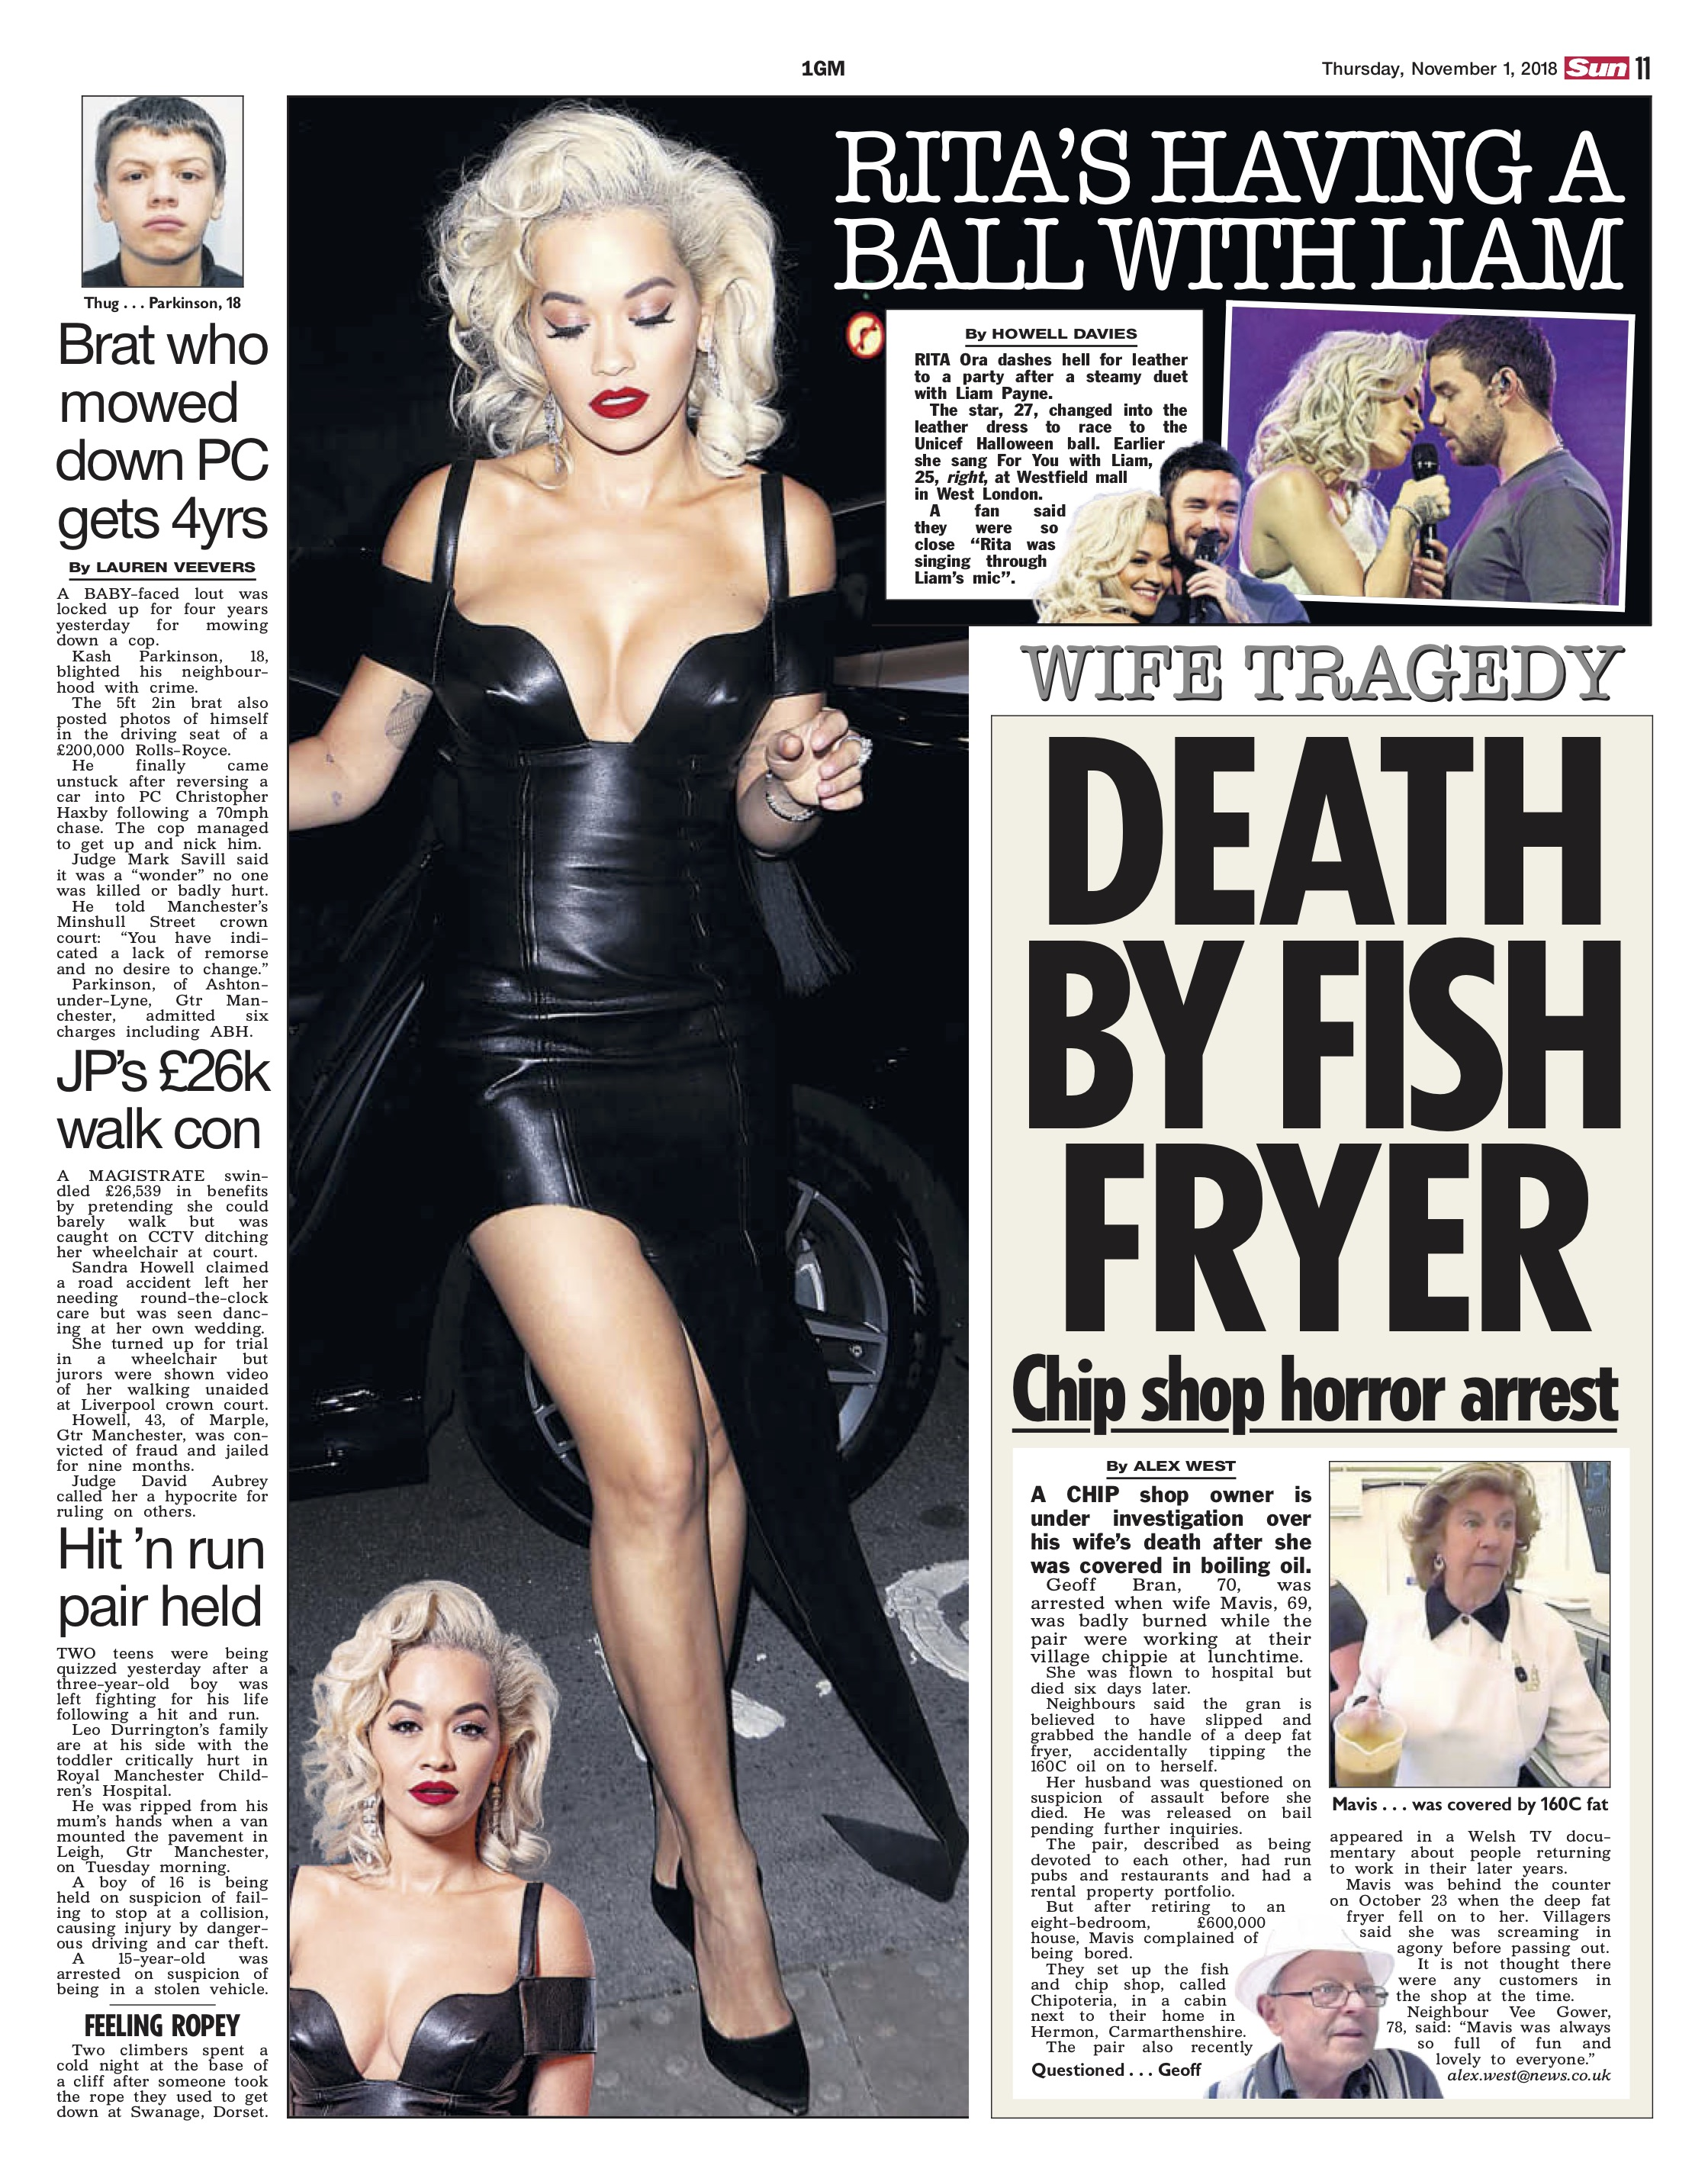 Rita Ora and Liam Payne / The Sun